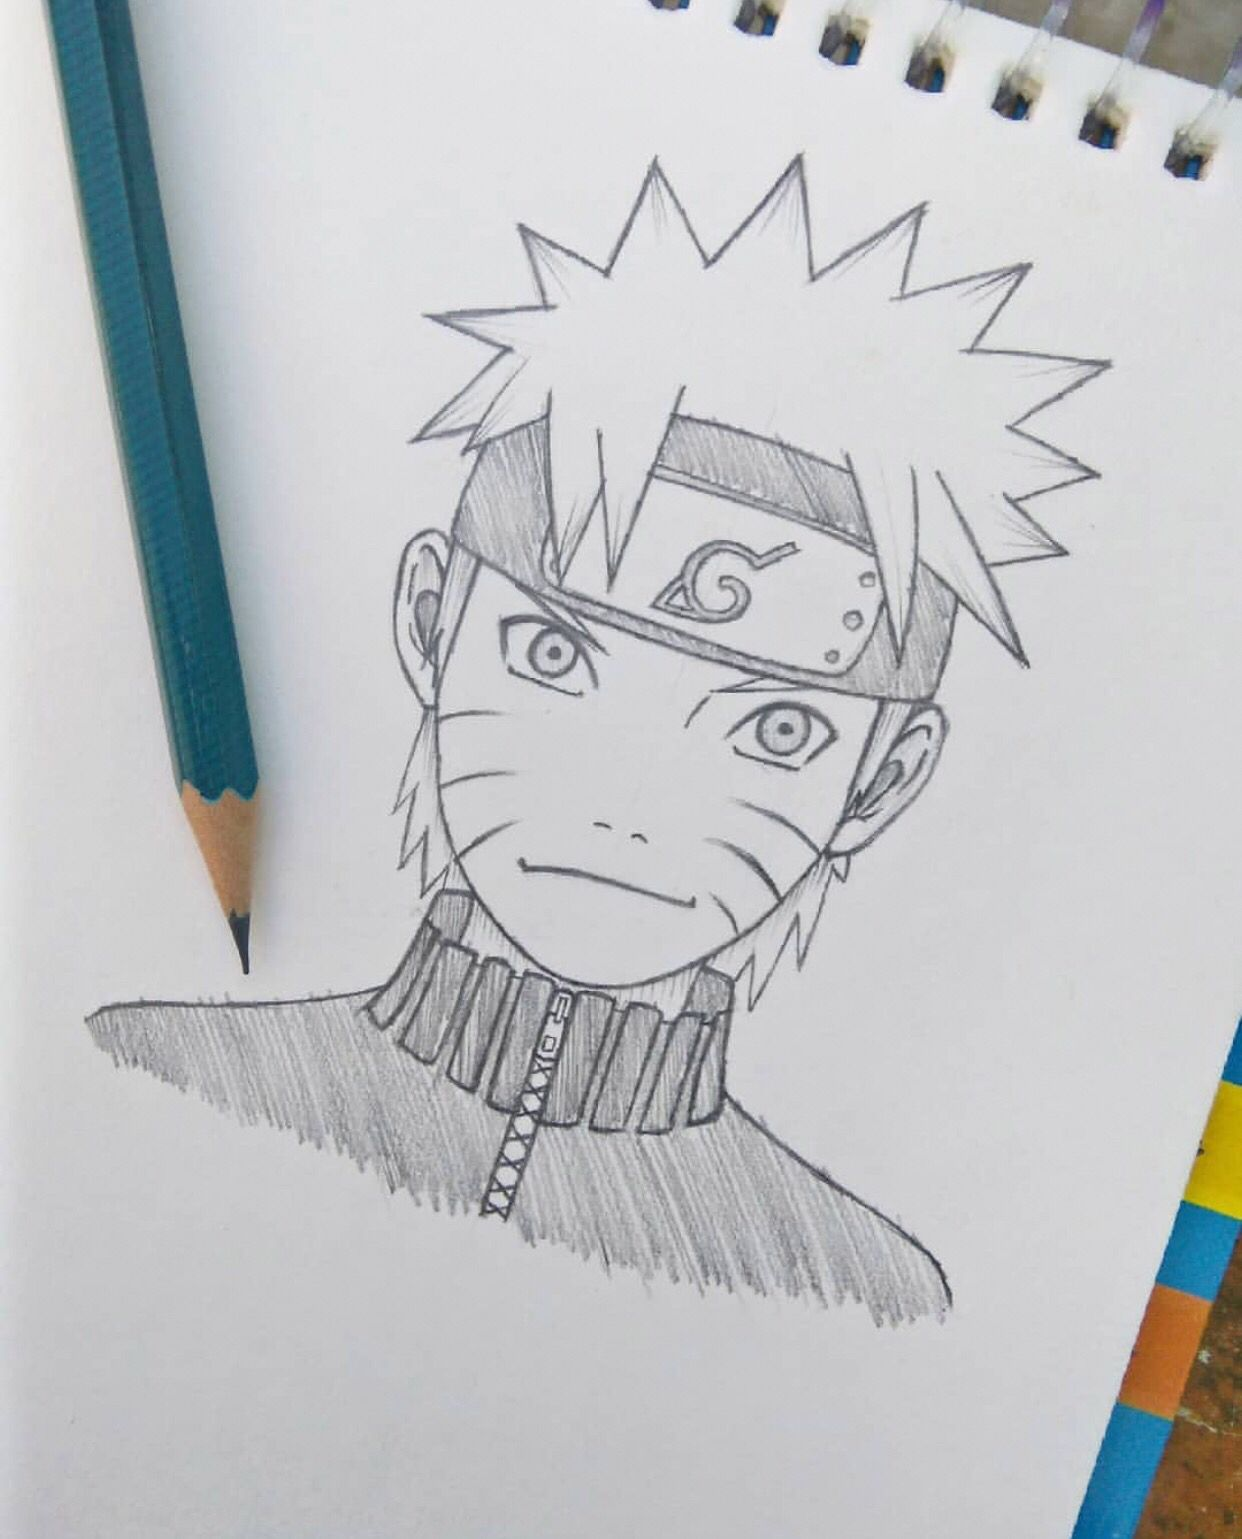 Naruto Naruto Sketch Drawing Naruto Drawings Anime Drawings Sketches